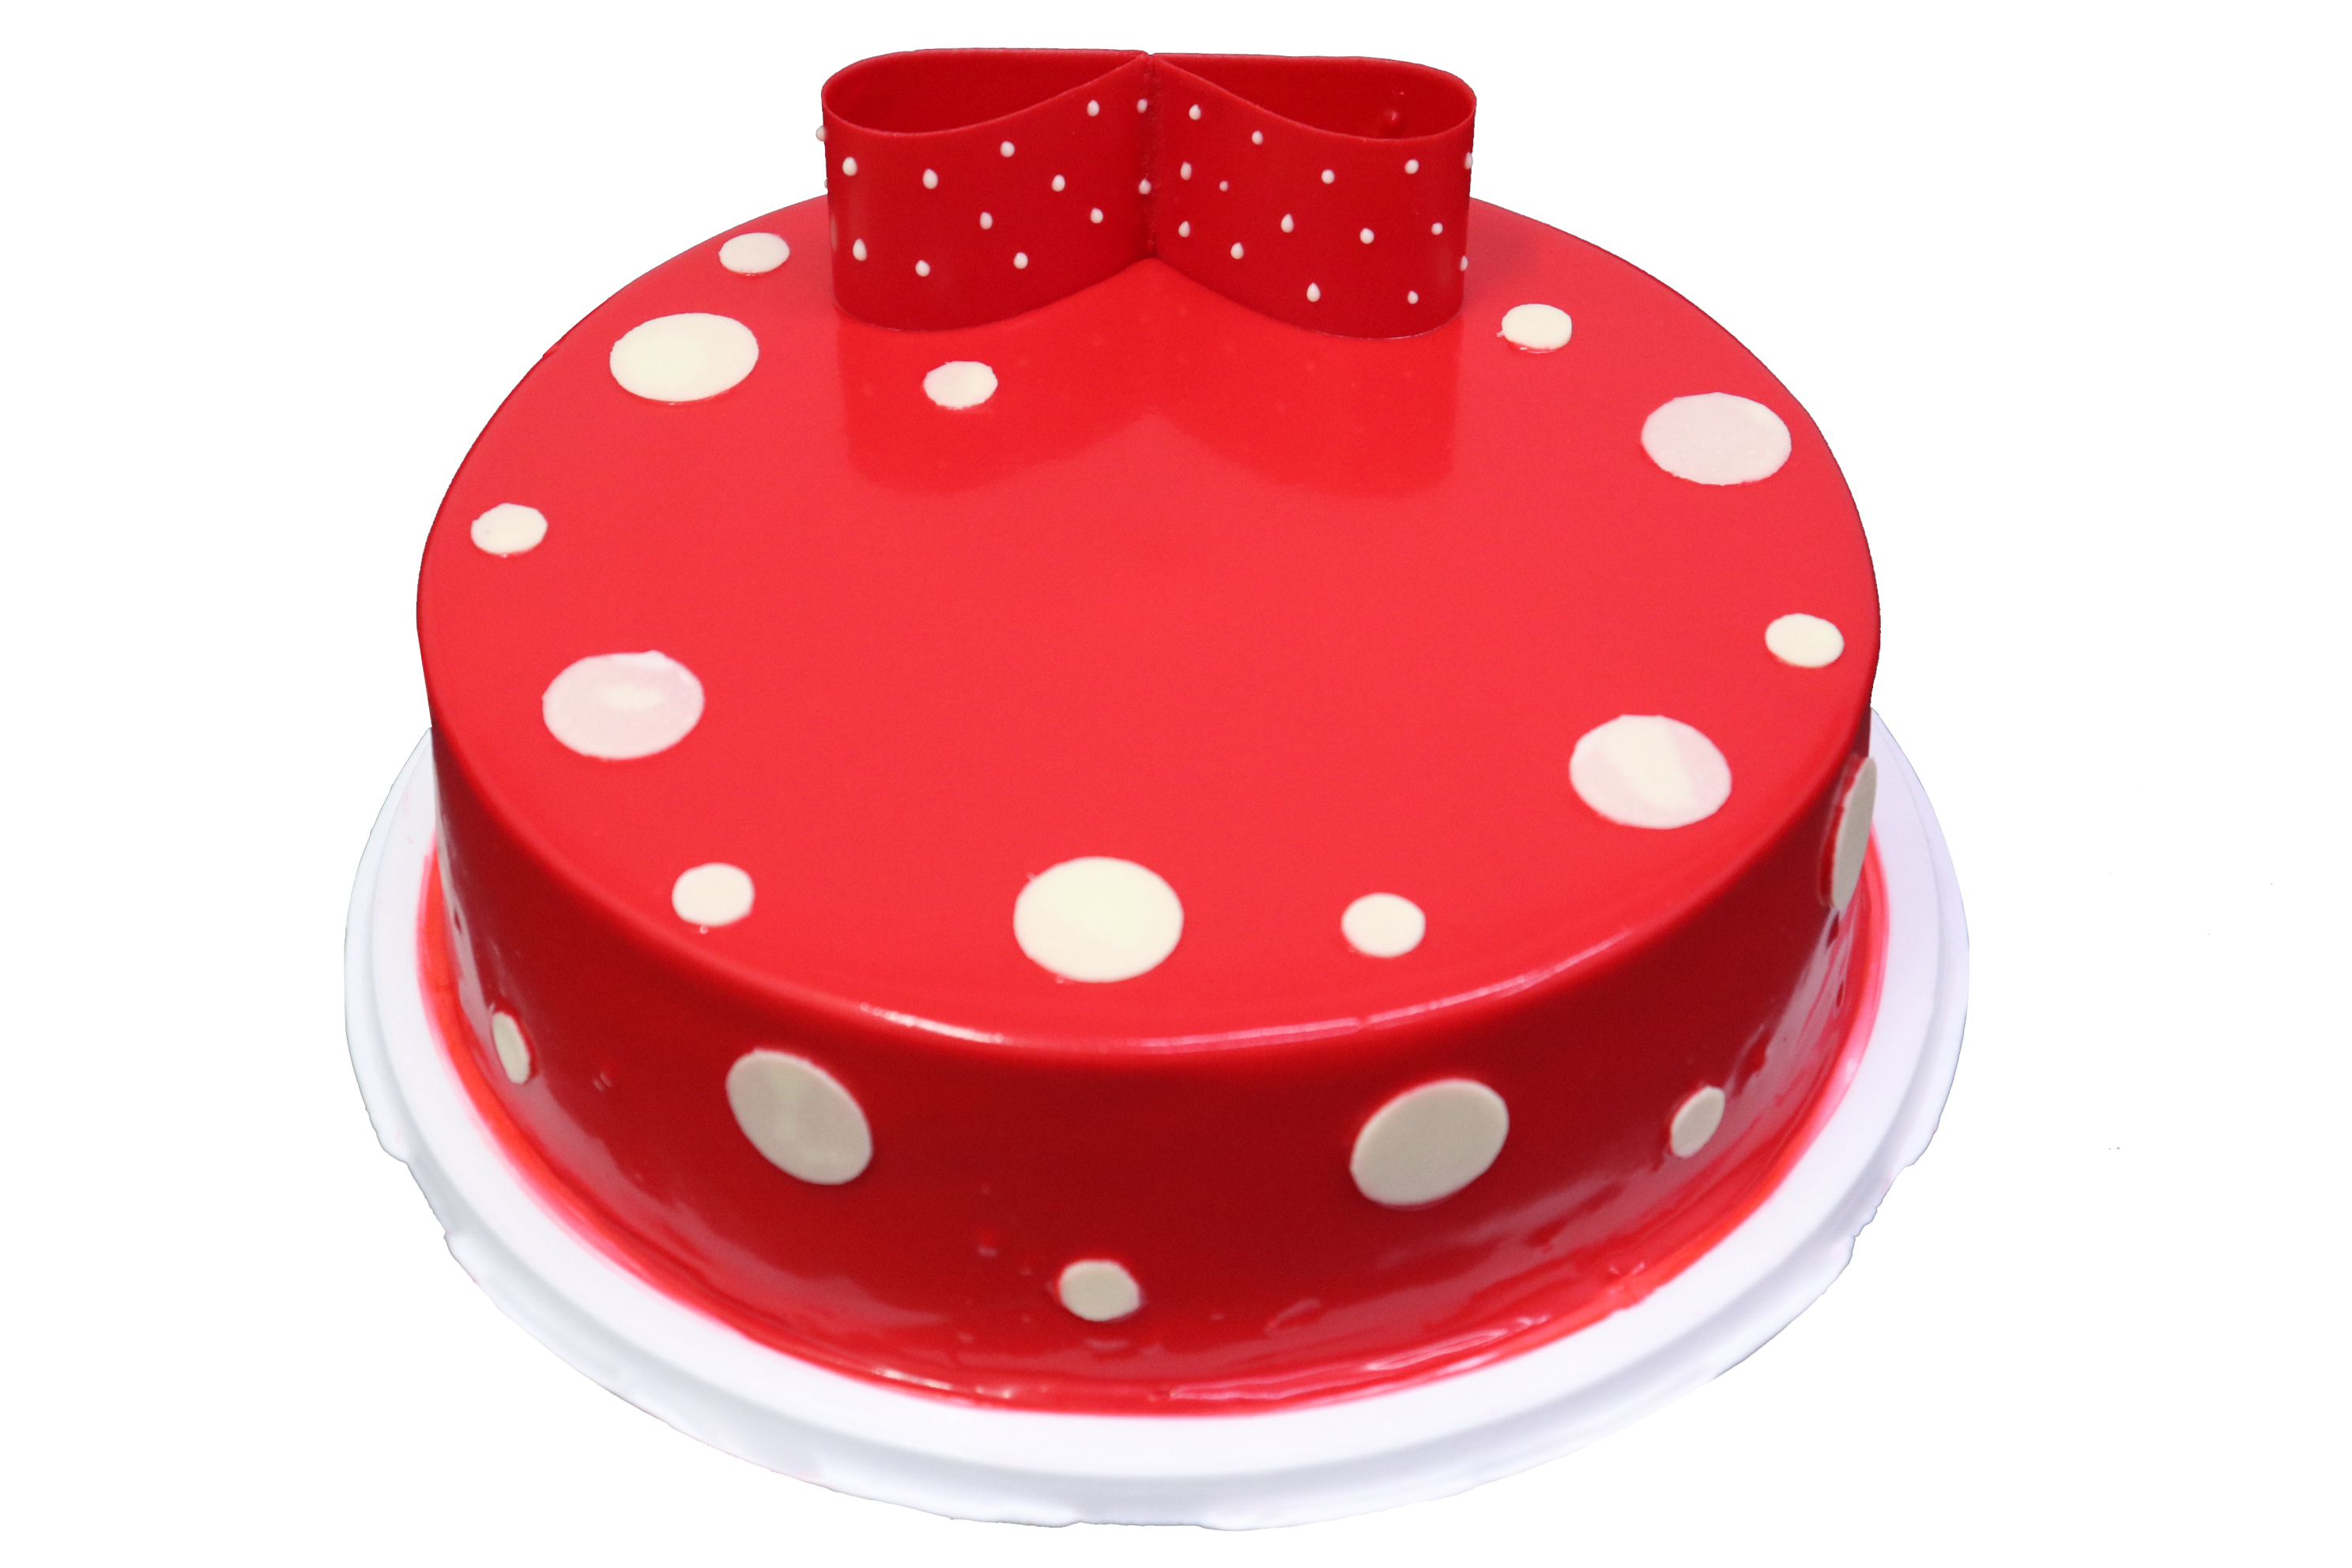 Red Bow Tie Cake